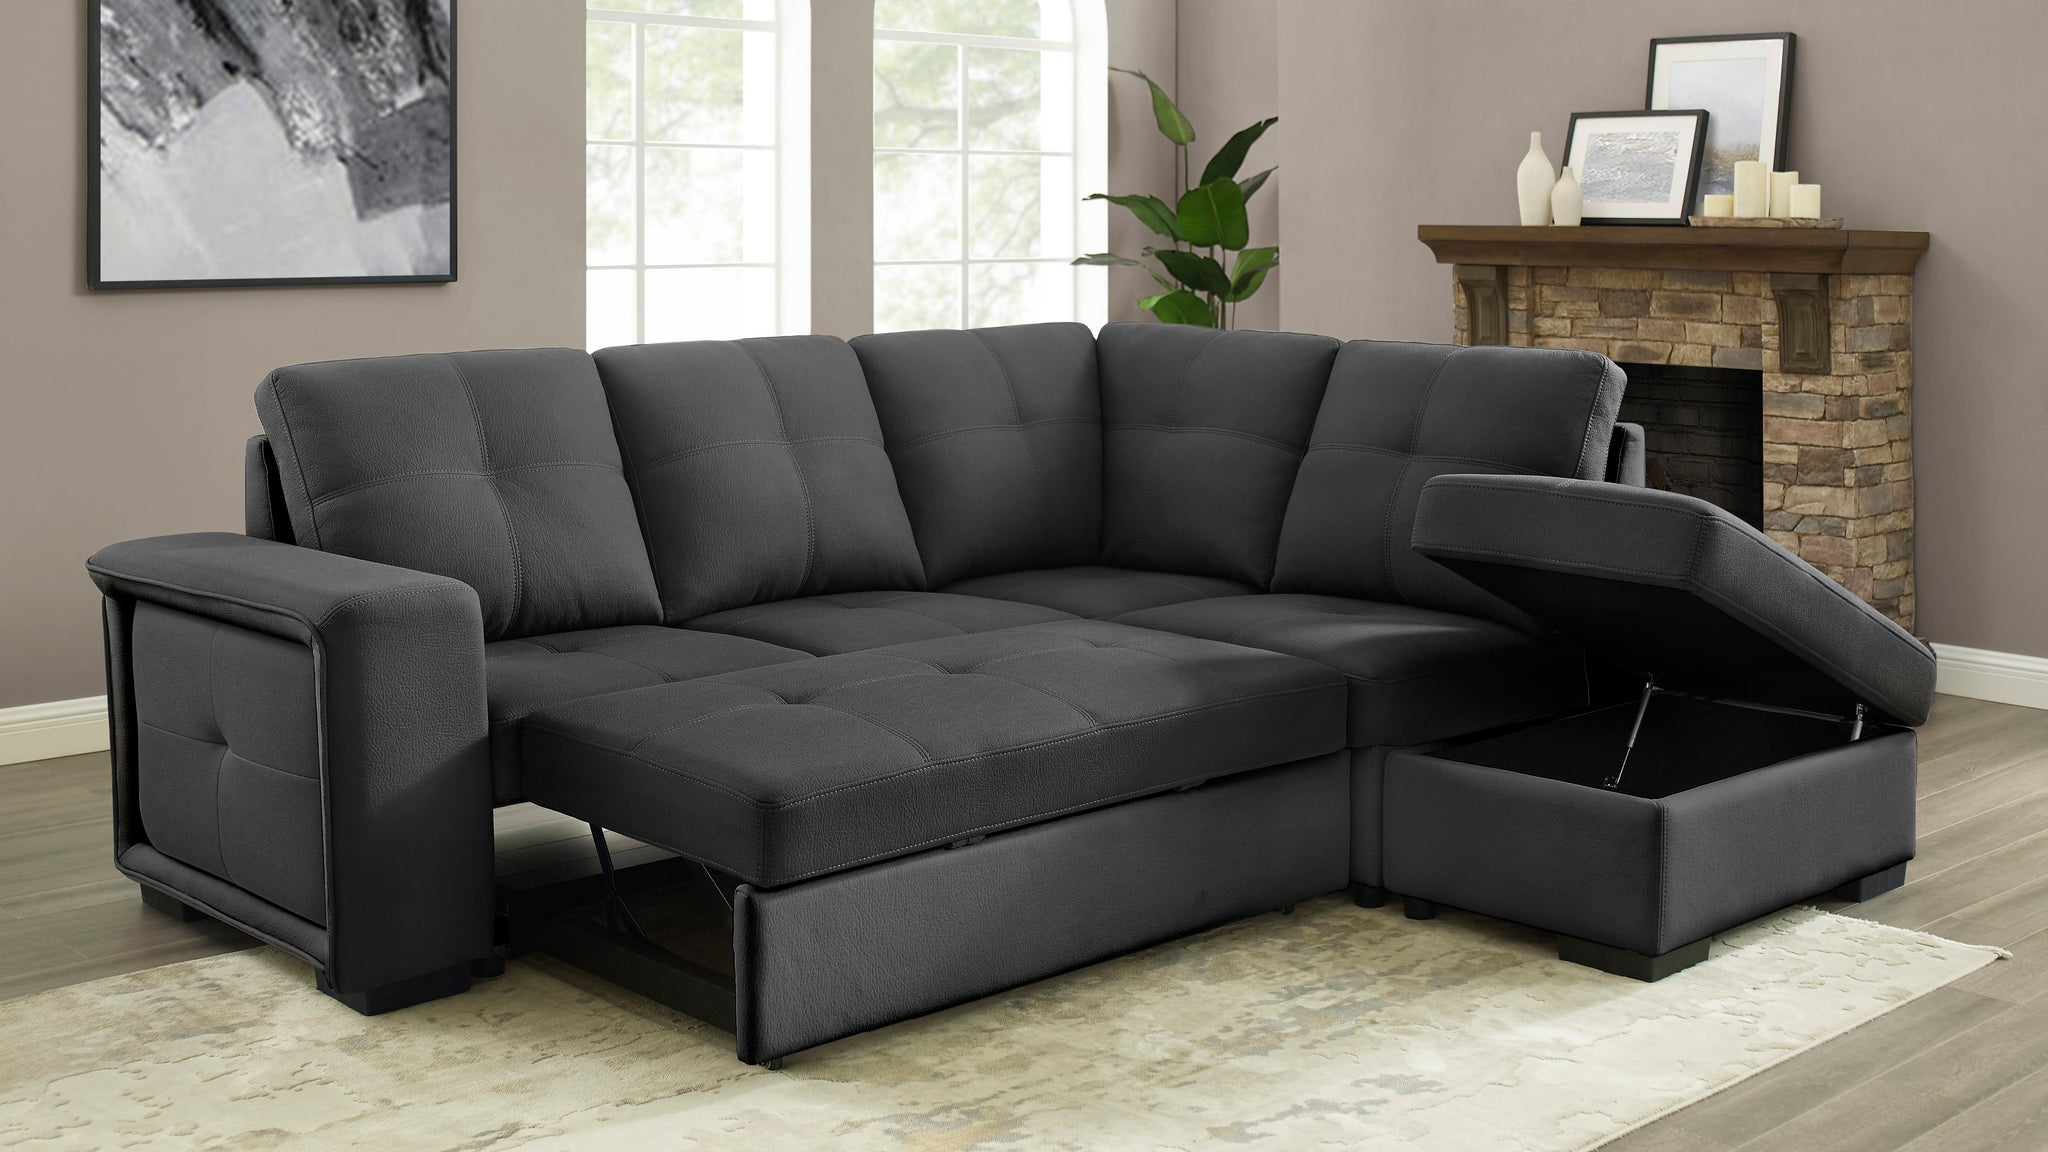 Soho Sofa Bed Sectional (RHF)